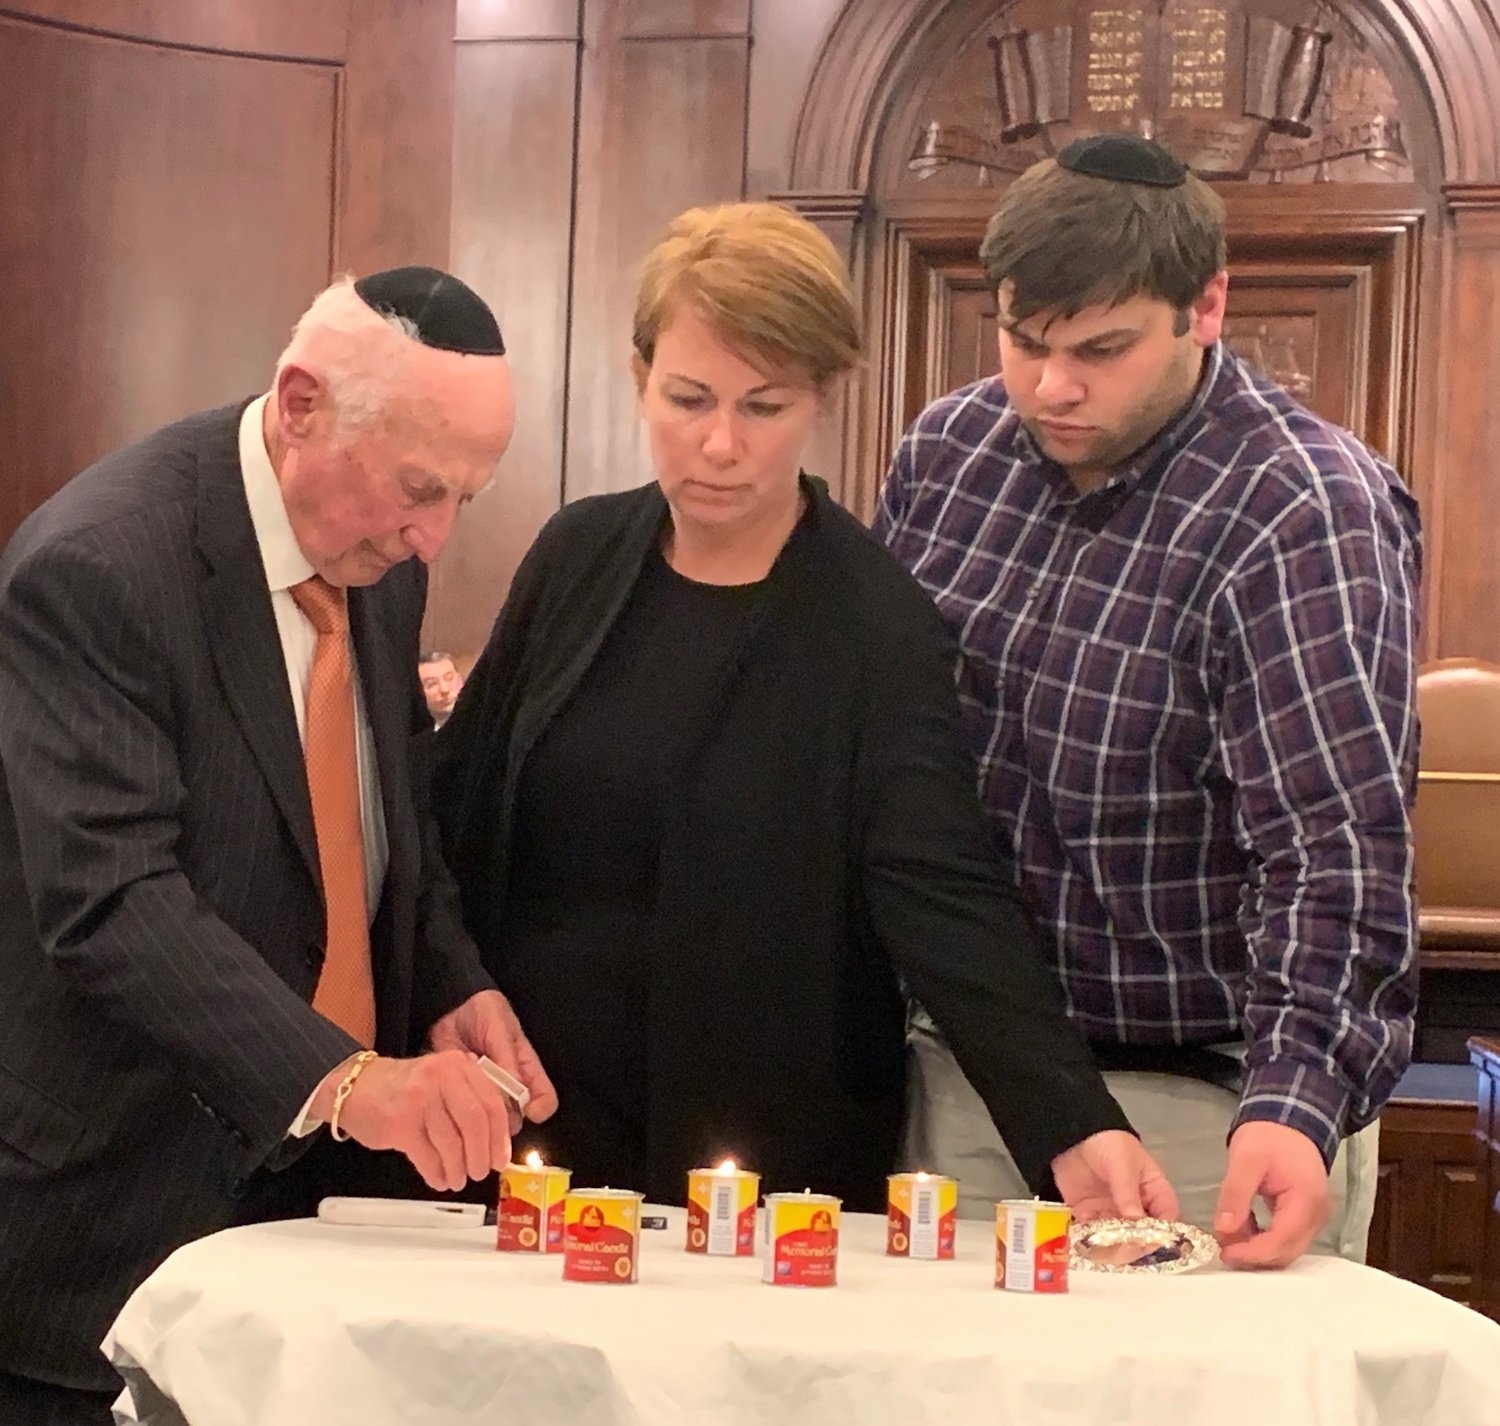 Survivor Frank Berger lights a memorial candle at Five Towns Holocaust remembrance event, at Congregation Beth Sholom in Lawrence, March 1, 2019.